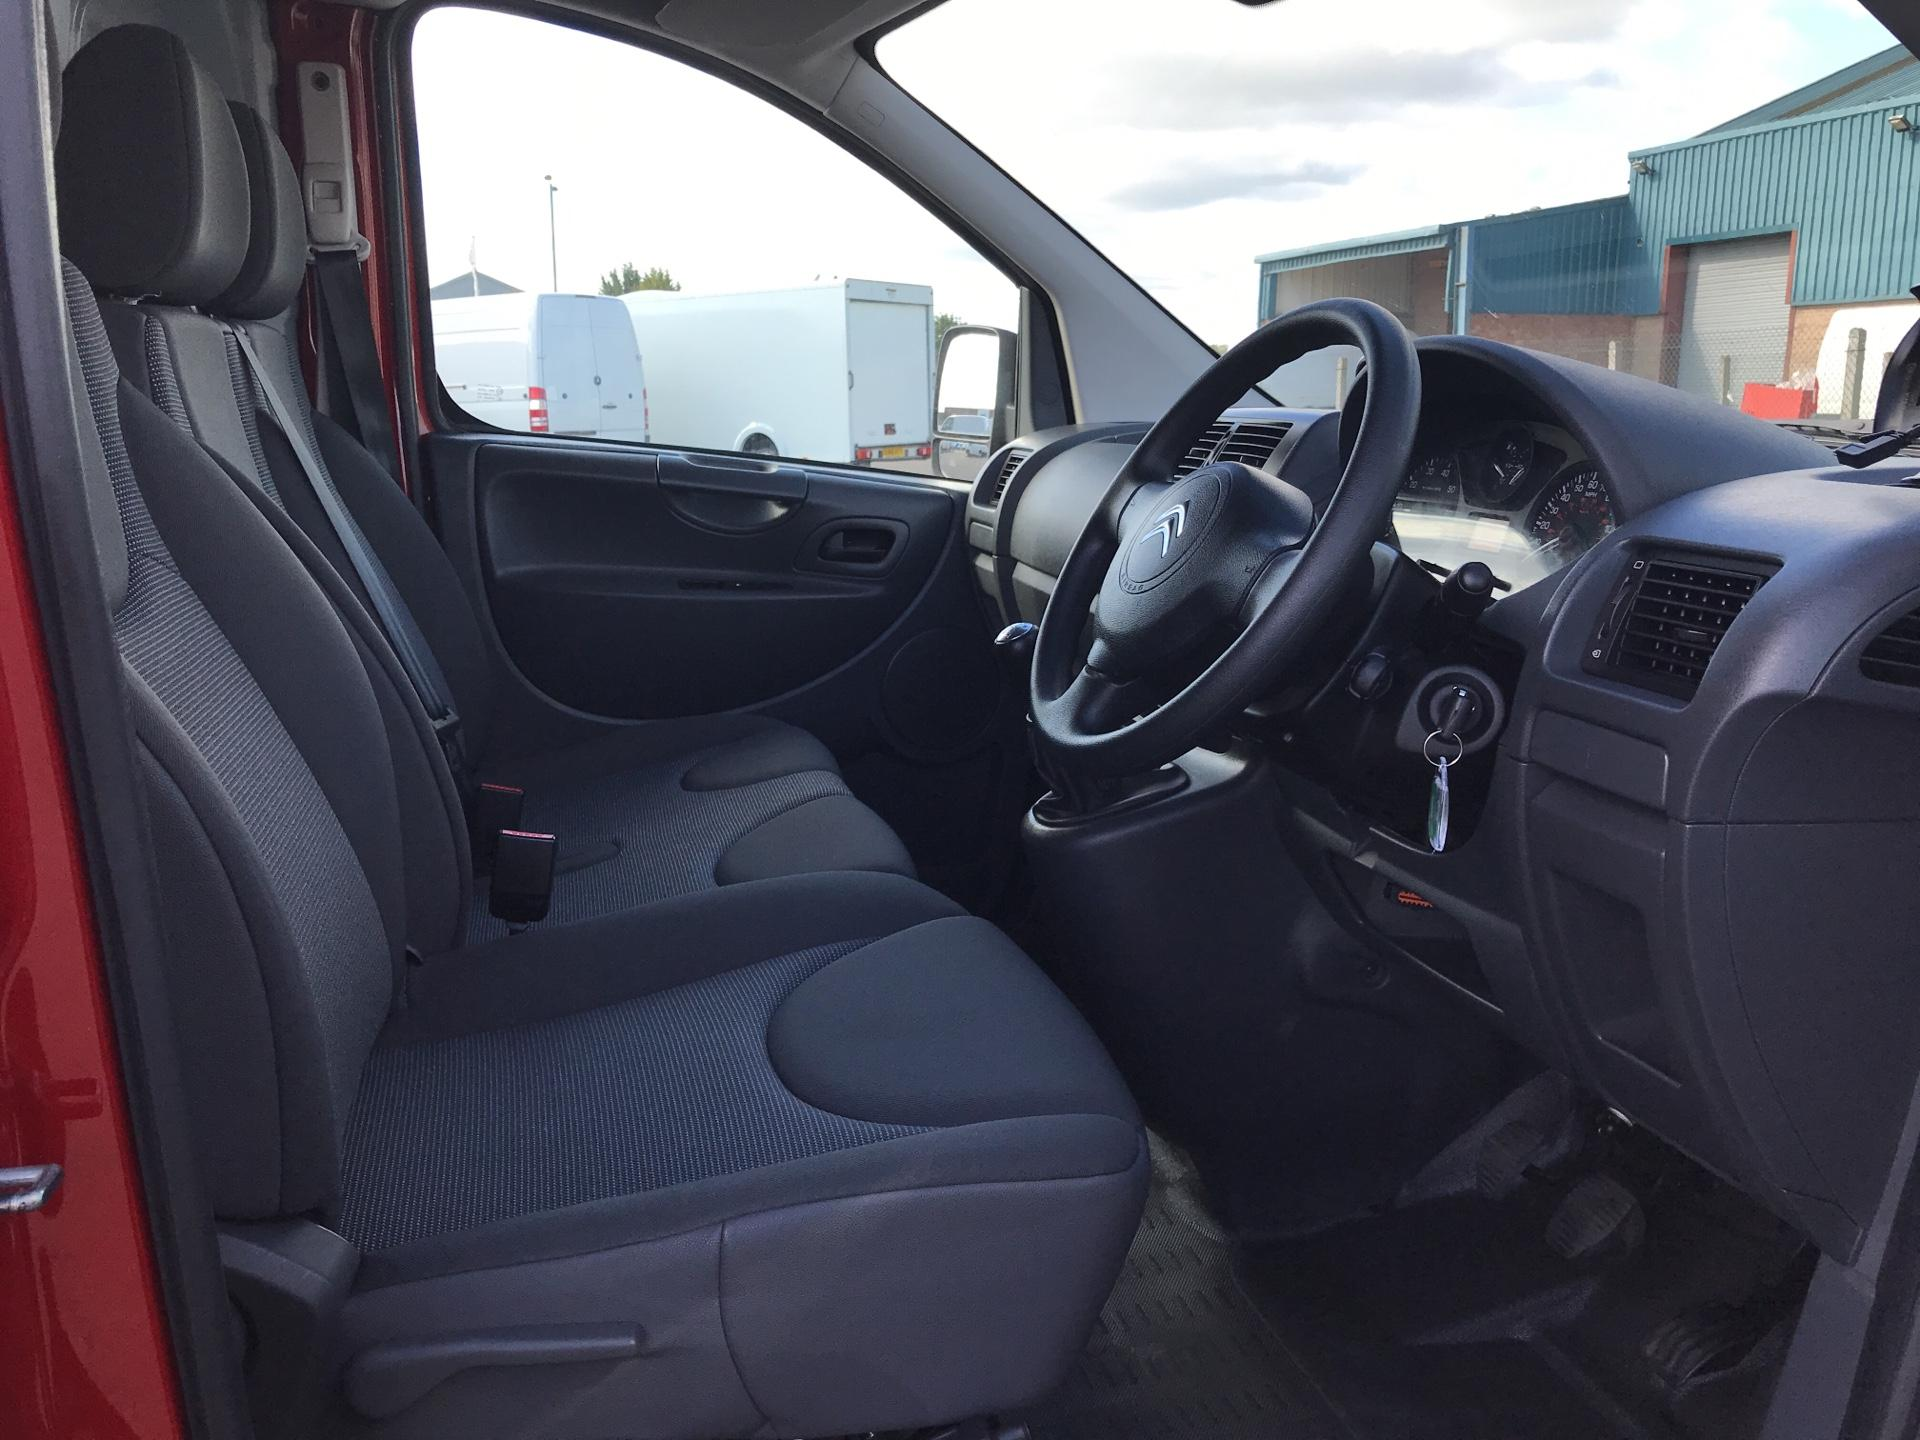 2016 Citroen Dispatch L1 DIESEL 1000 1.6 HDI H1 VAN ENTERPRISE EURO 4/5. AIR CON, SAT NAV (LN16UWG) Image 9